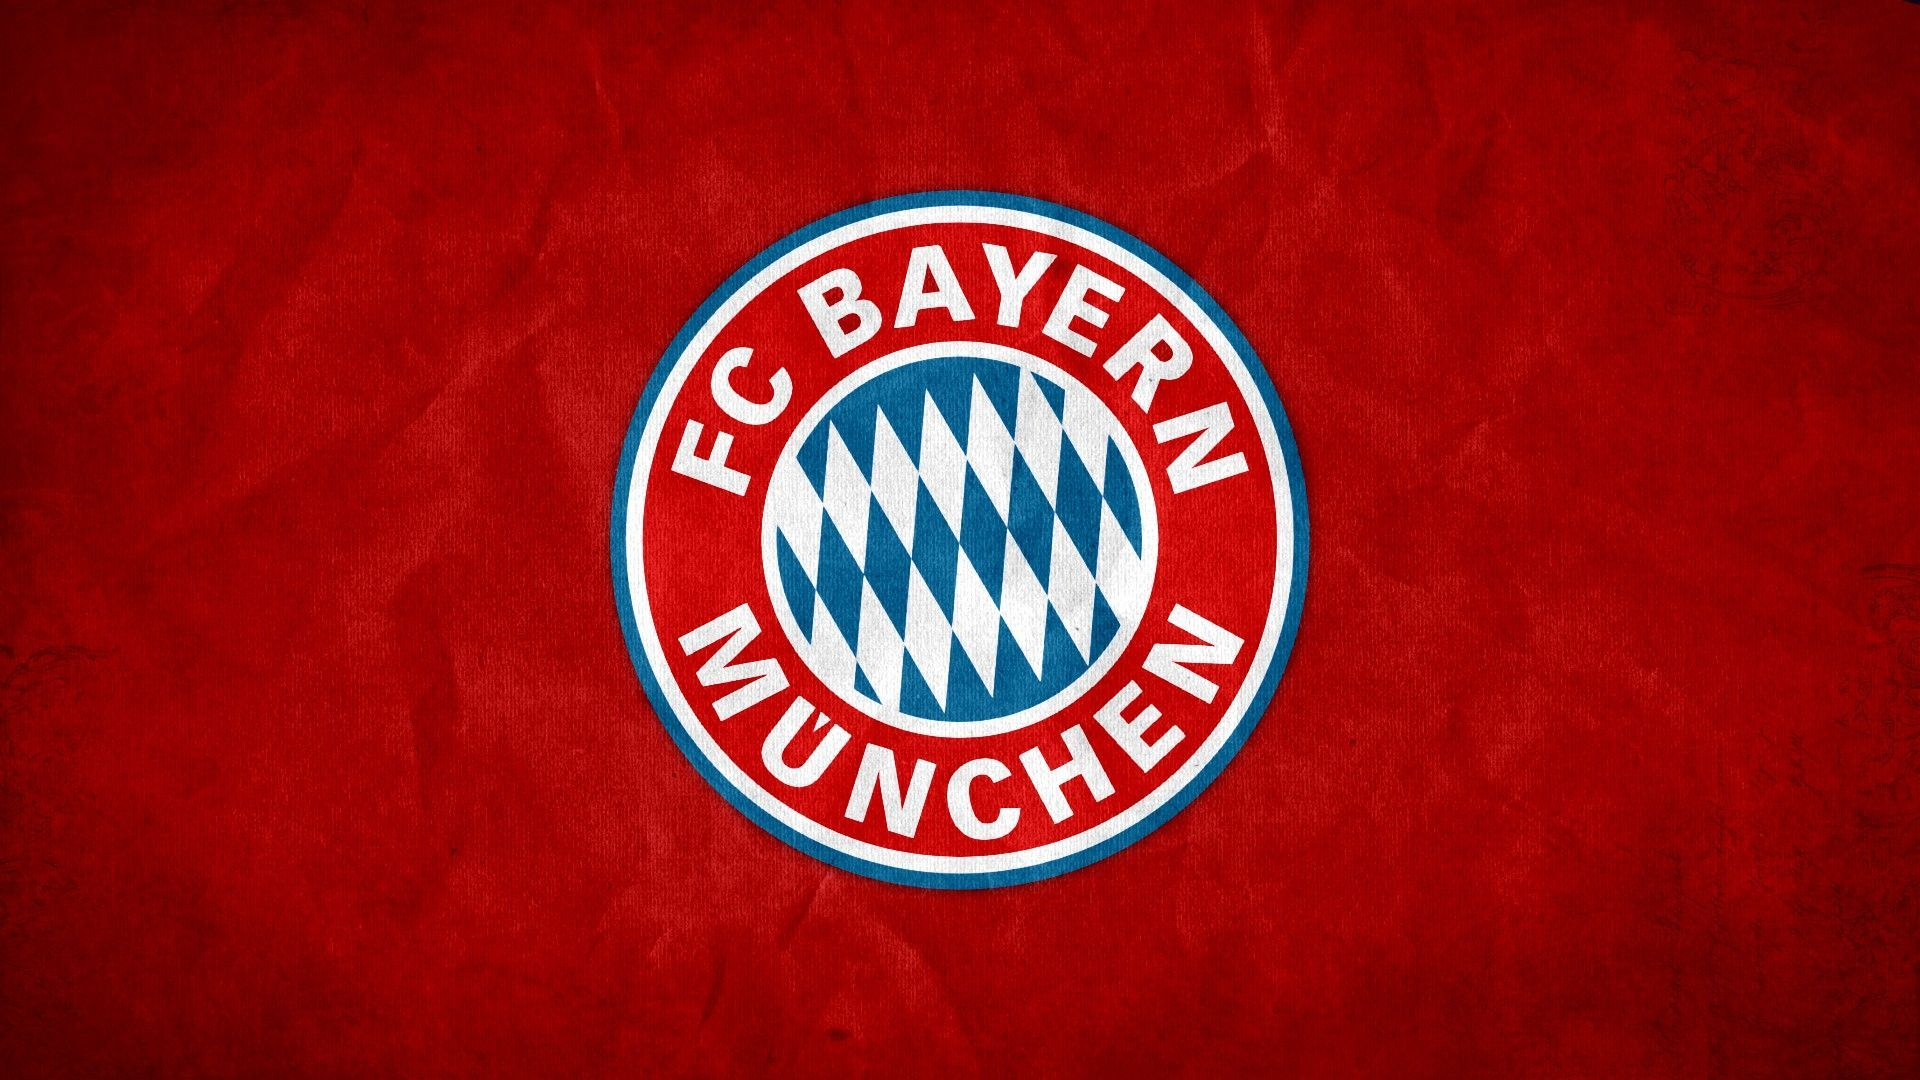 Bayern-Munchen-Football-Club-Football-HD-1920%C3%971080-Bayern-Munich-wallpaper-wp3402924